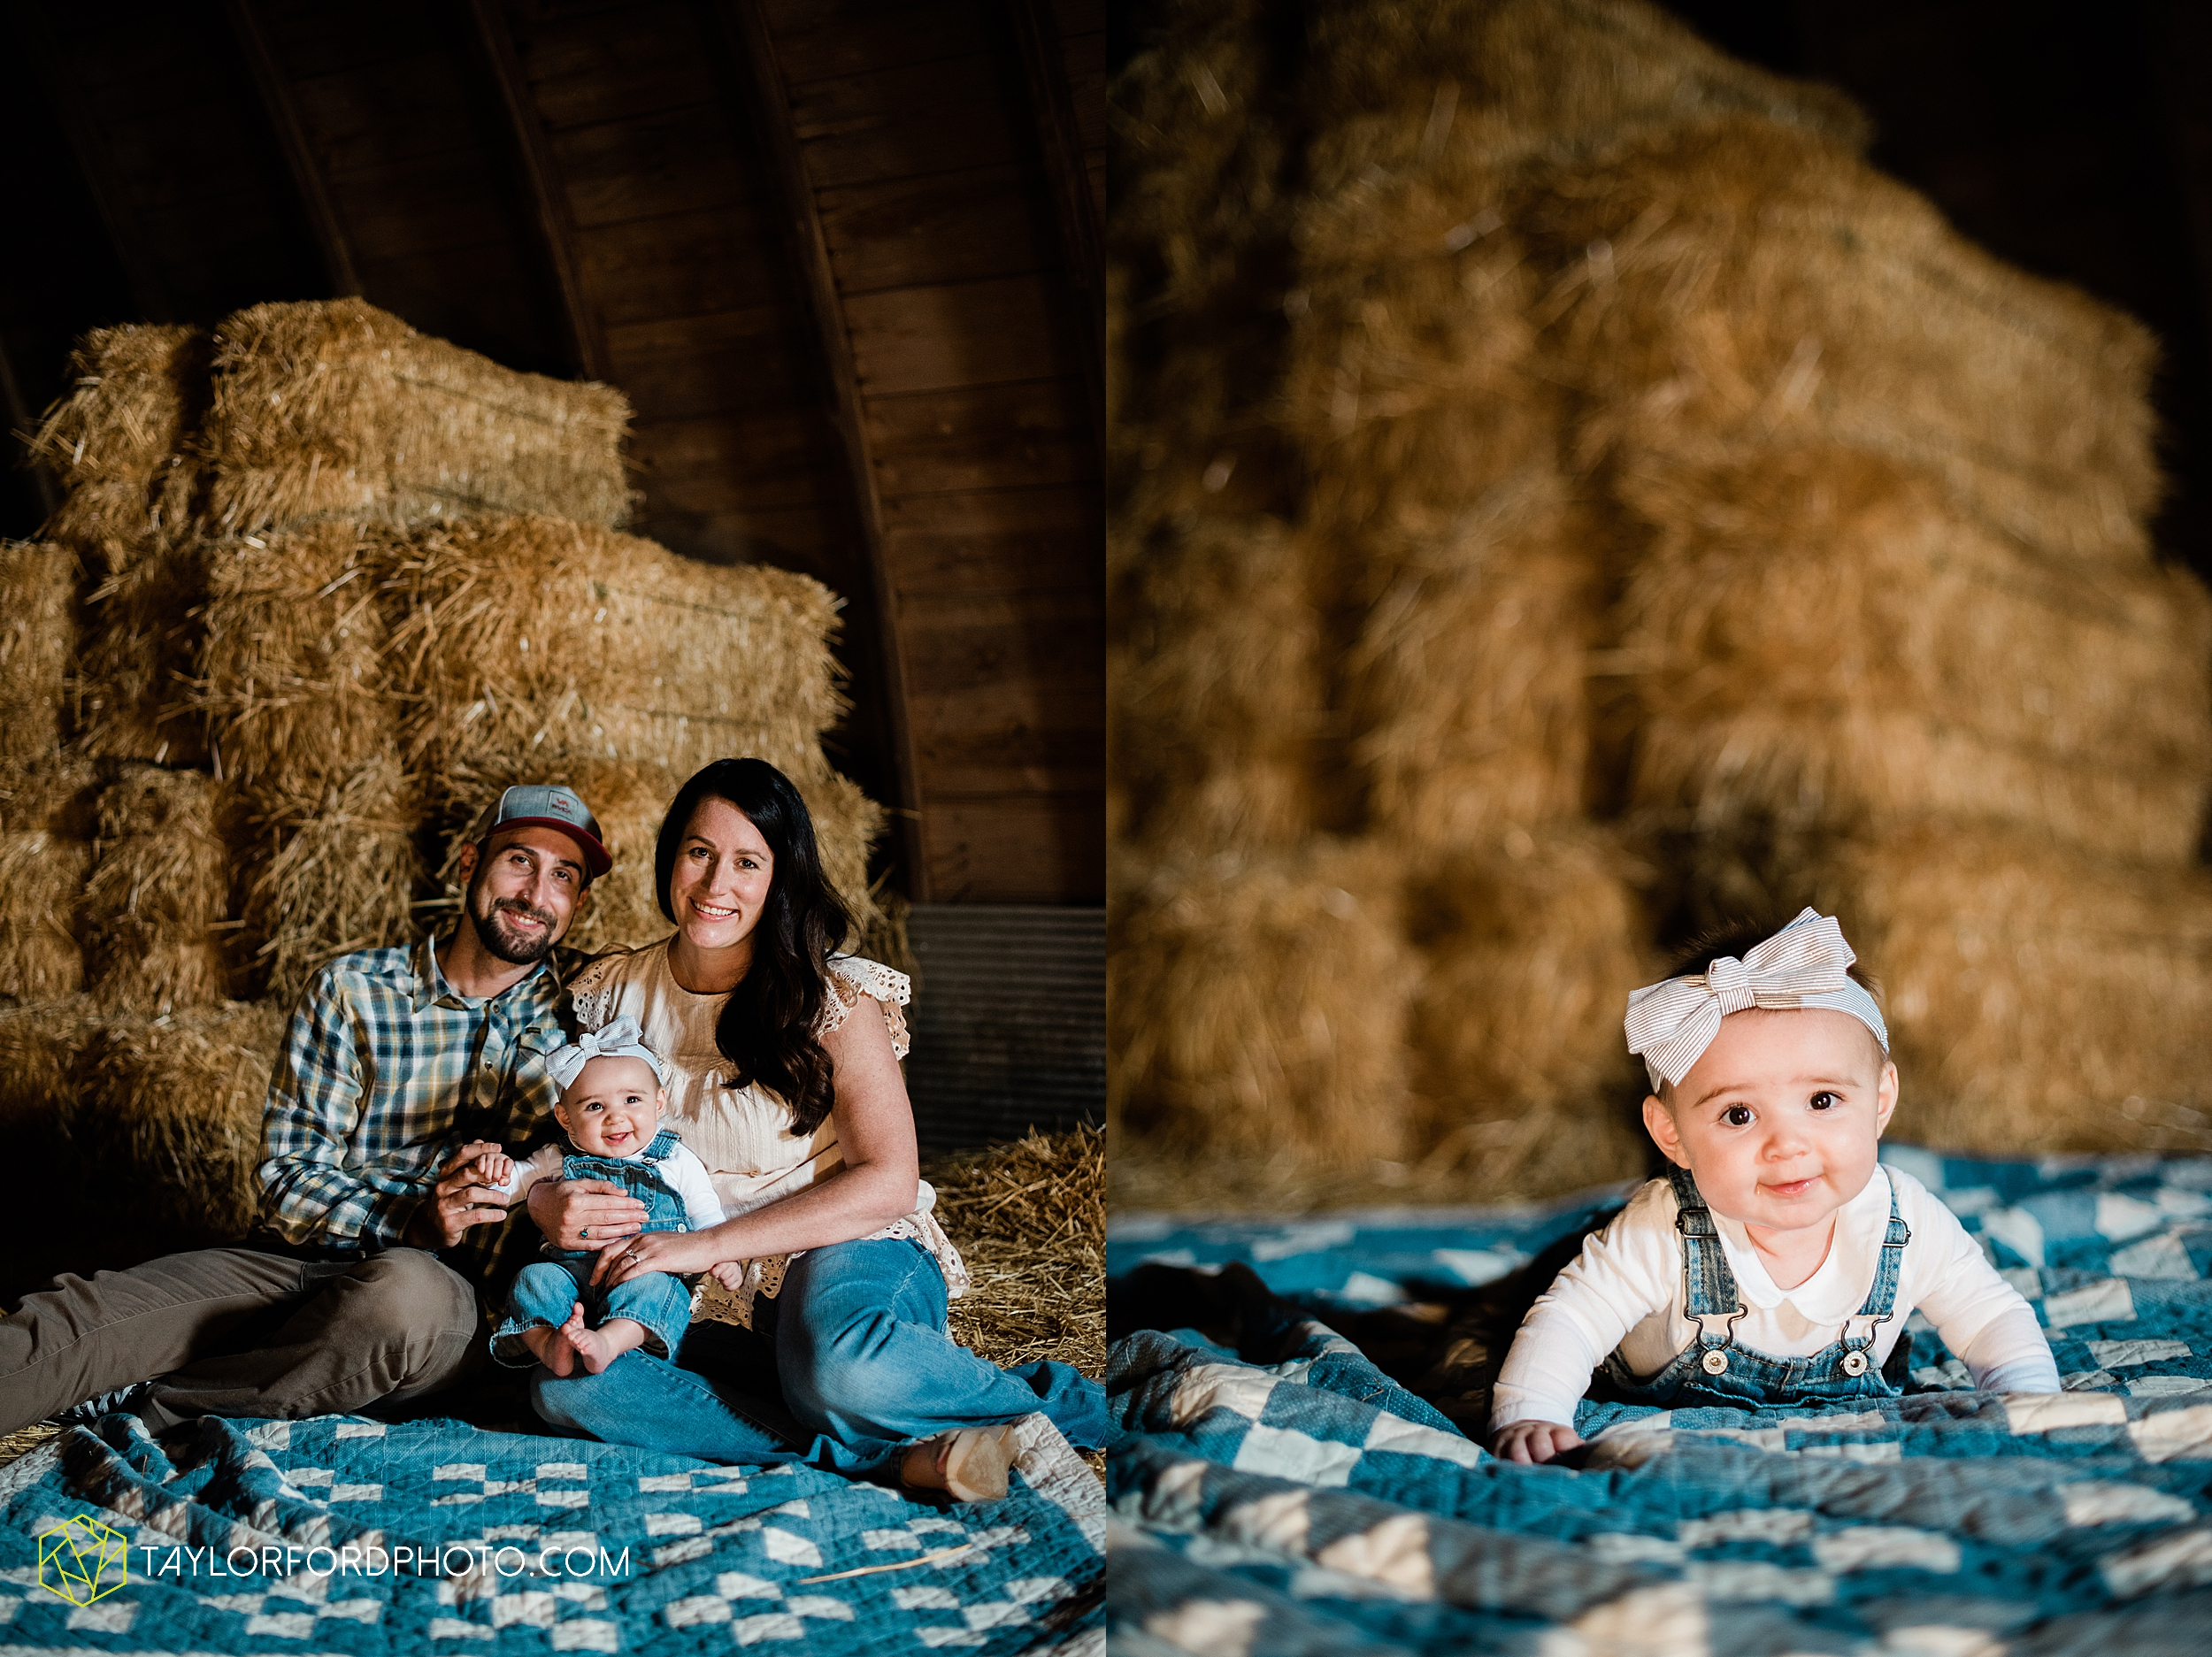 austin-texas-newborn-family-at-home-farm-hiestand-woods-van-wert-county-ohio-farm-family-photography-taylor-ford-hirschy-photographer_3489.jpg